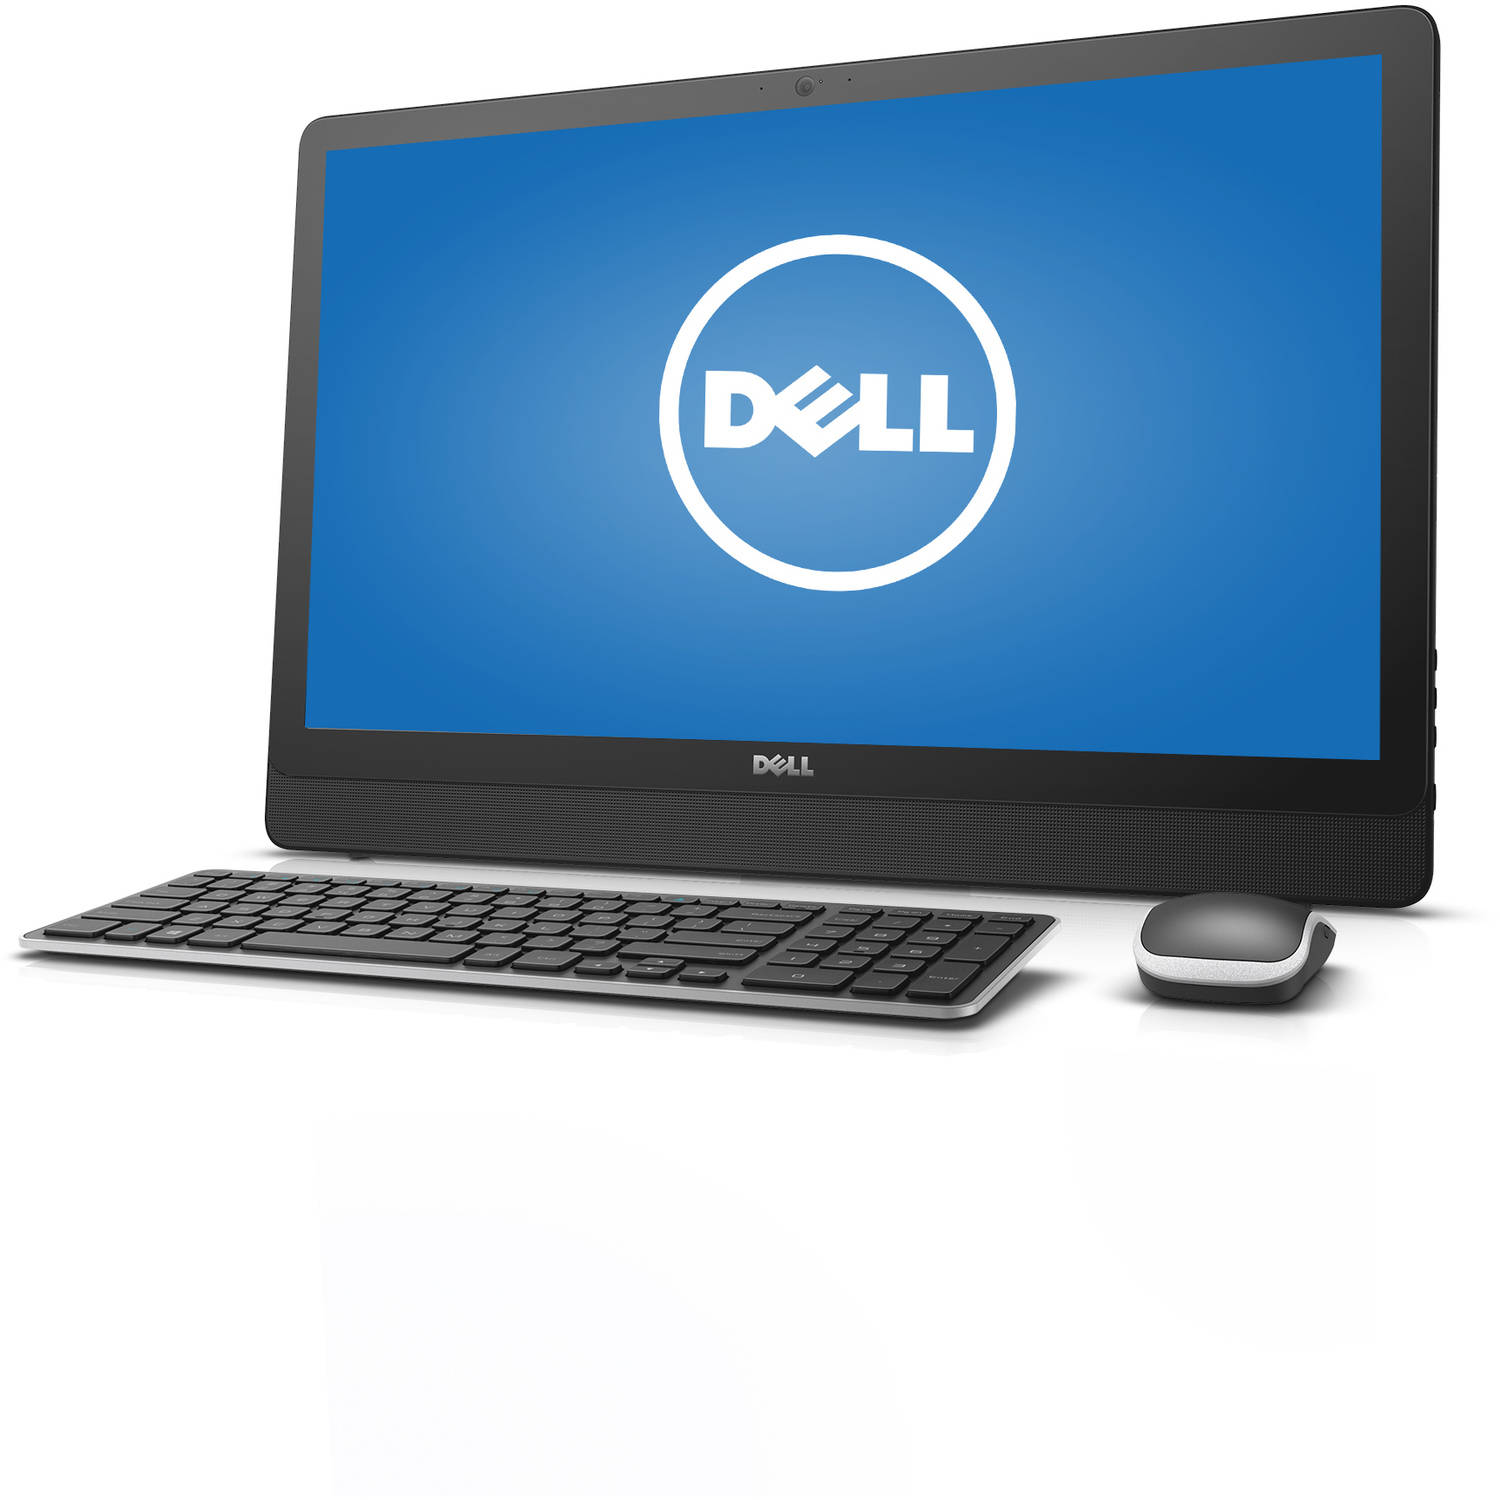 "Dell Inspiron 3459 i3459-3275BLK All-in-One Desktop PC with Intel Core i3-6100U Processor, 8GB Memory, 23.8"" touch screen, 1TB Hard Drive and Windows 10"